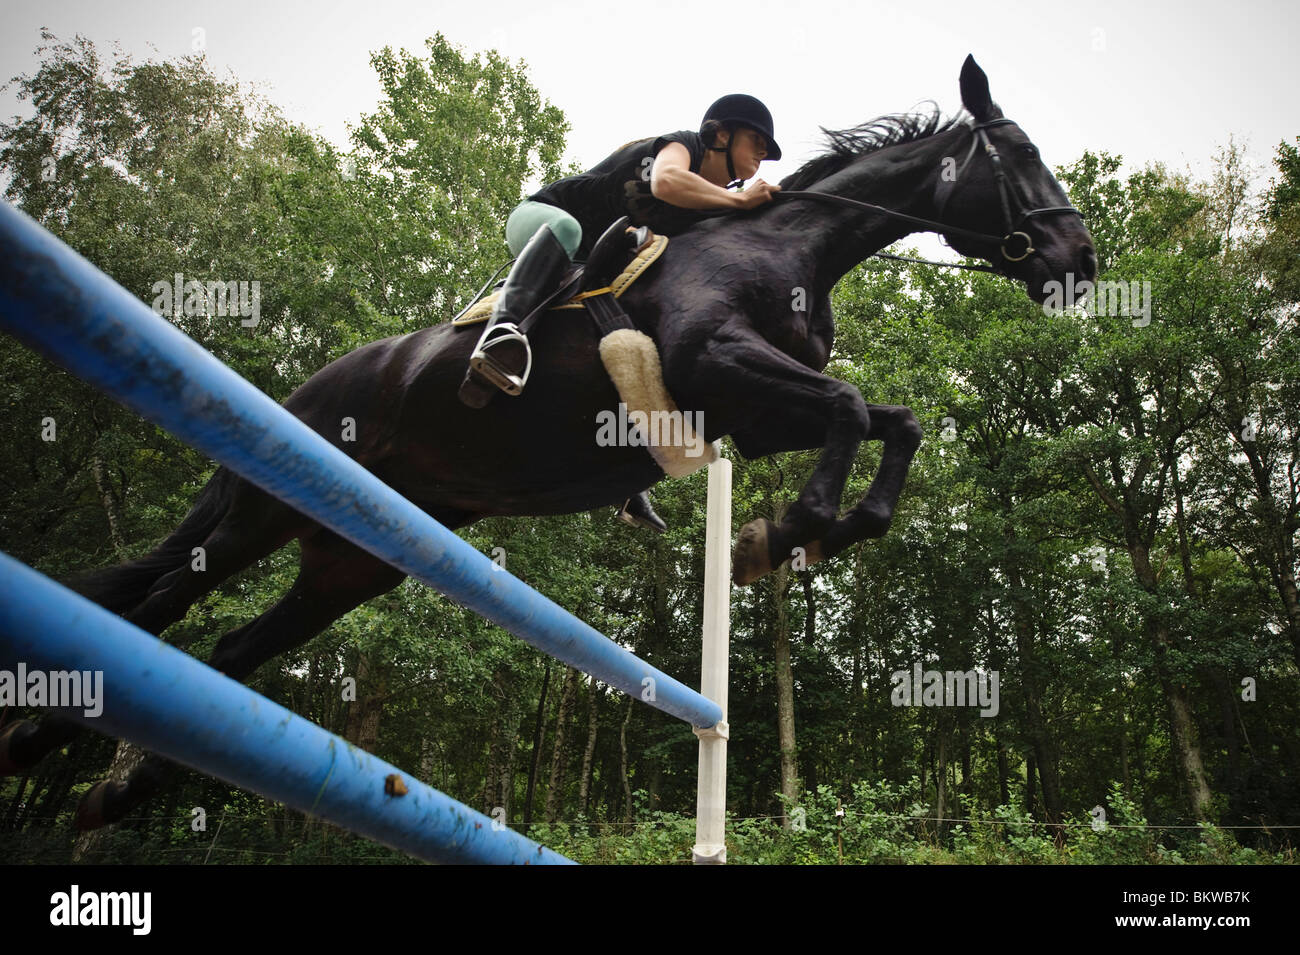 Horse jumping over obstacle - Stock Image